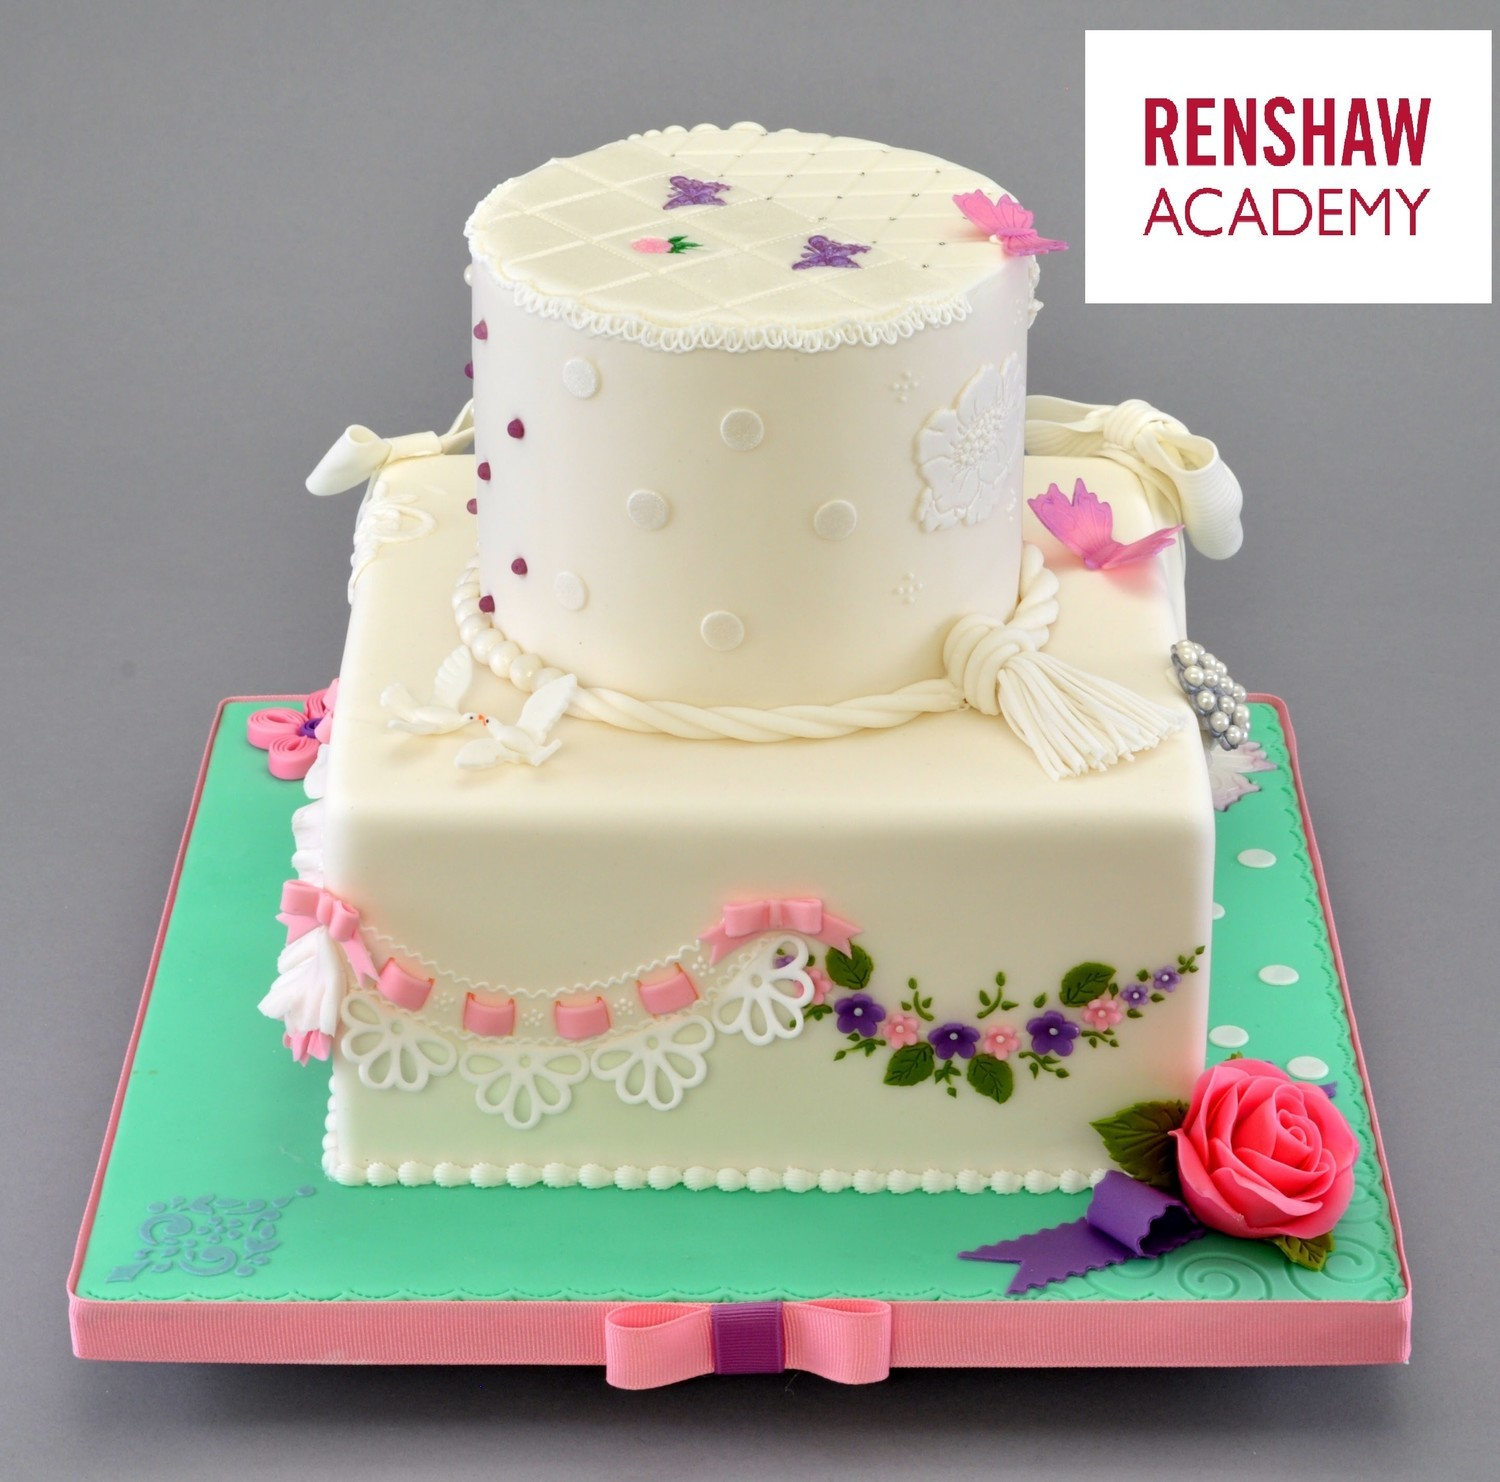 SOLD OUT!!! RENSHAW ACADEMY CERTIFICATION, Module 2; SUGARPASTE (FONDANT) JUNE 21-23 2019 3 Intensive Days To Know Everything To Handle Fondant With The Once On Only Nicholas Lodge At TSCS